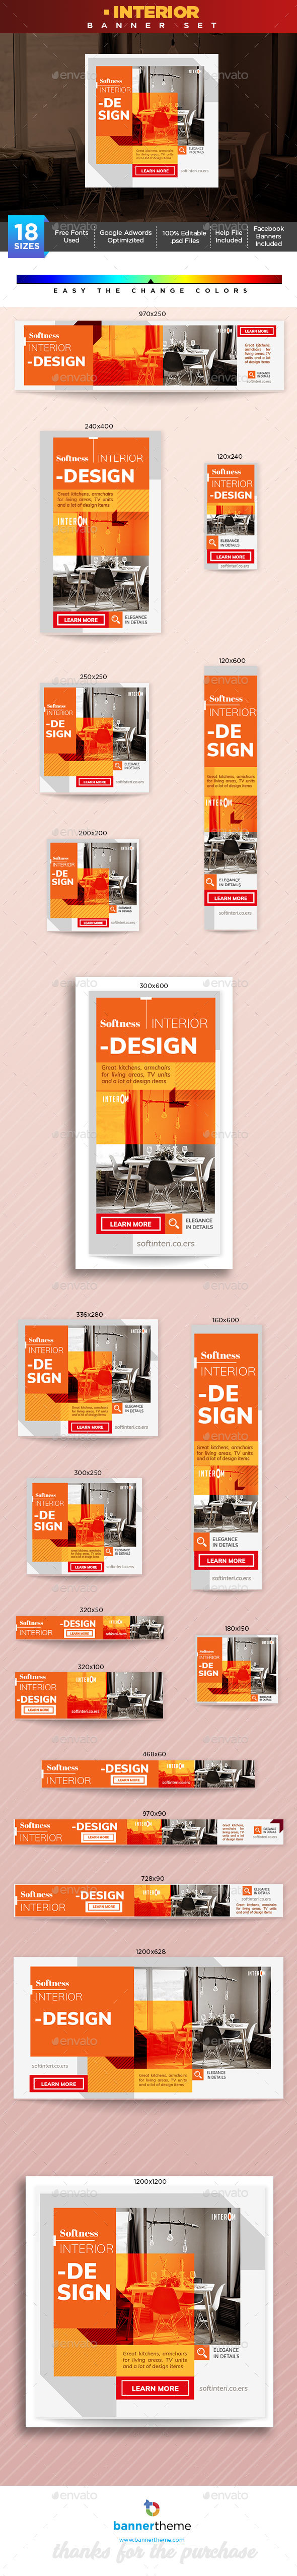 Interior - Banners & Ads Web Elements